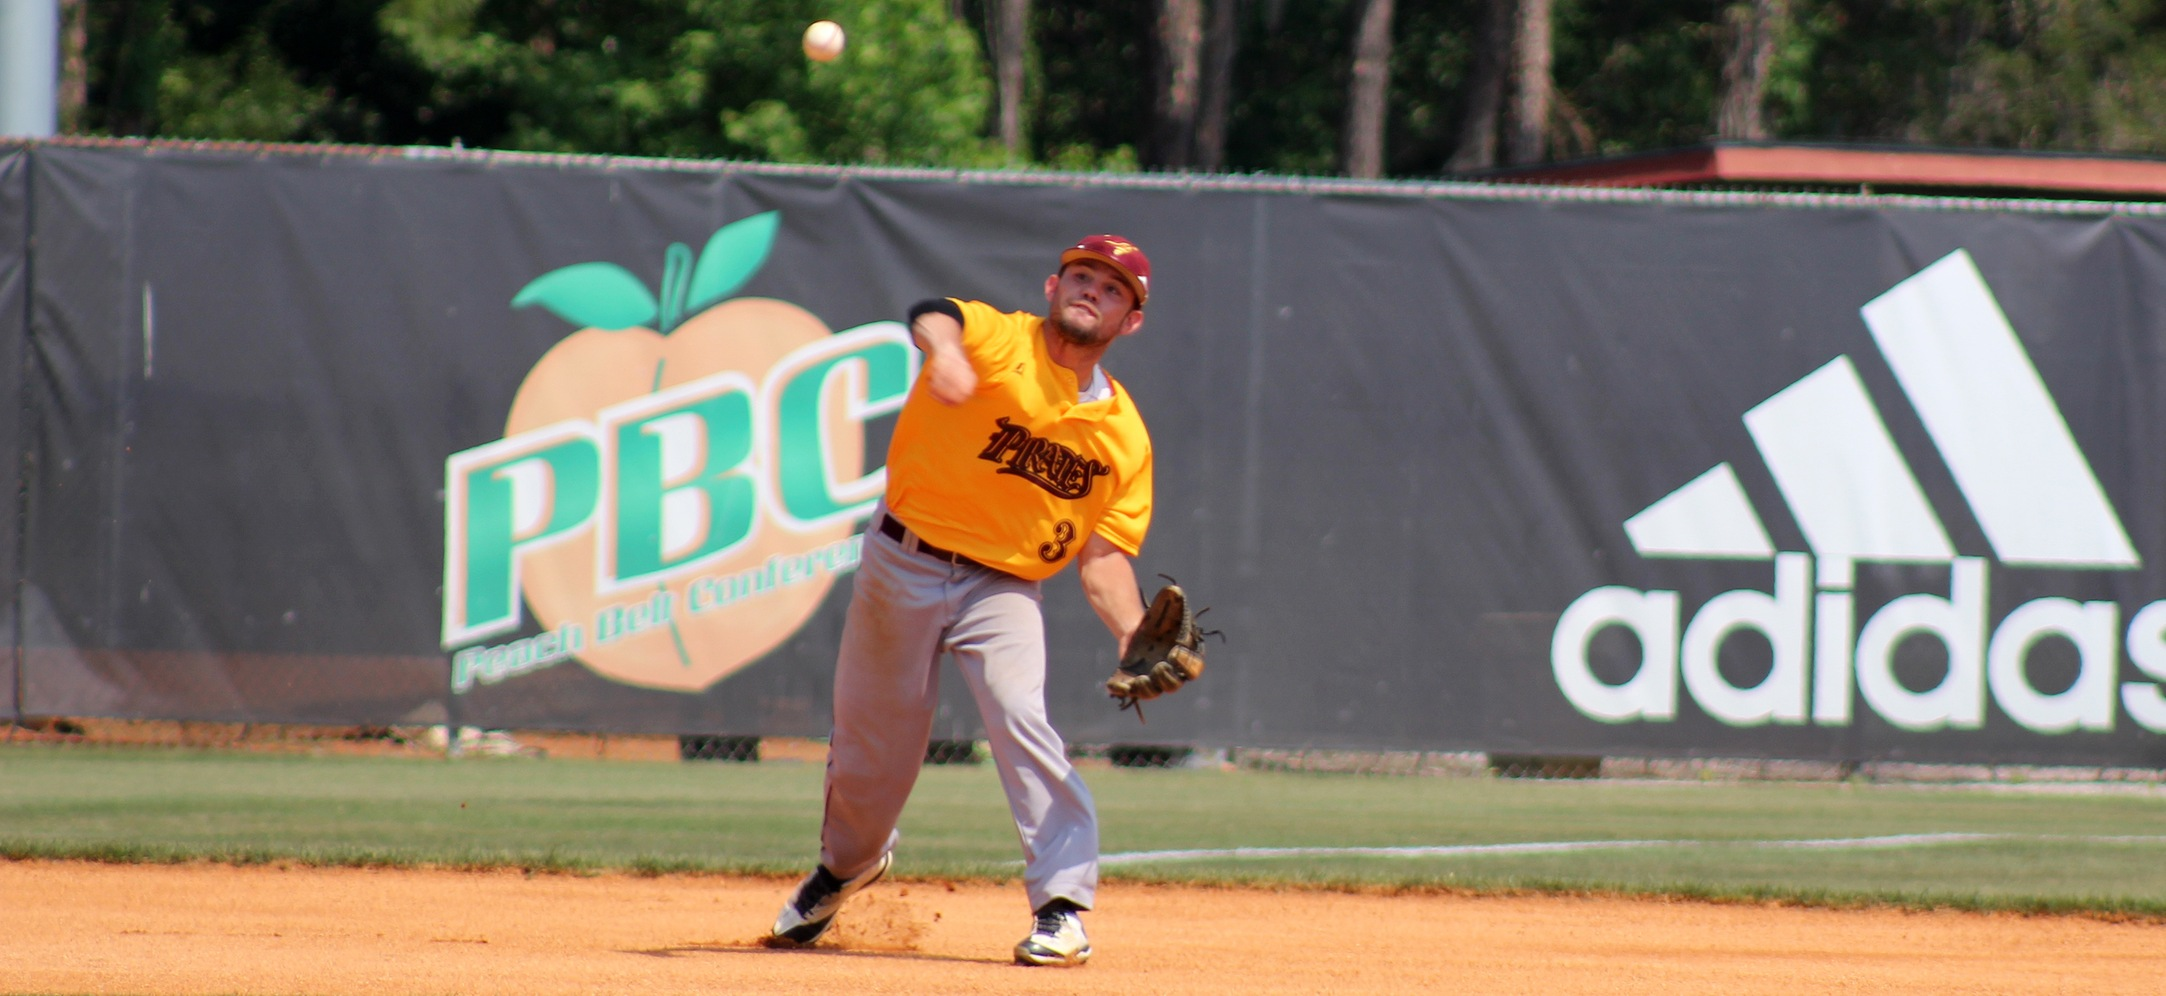 No. 21 UNC Pembroke Holds Off Pirate Baseball, 14-11, On Friday